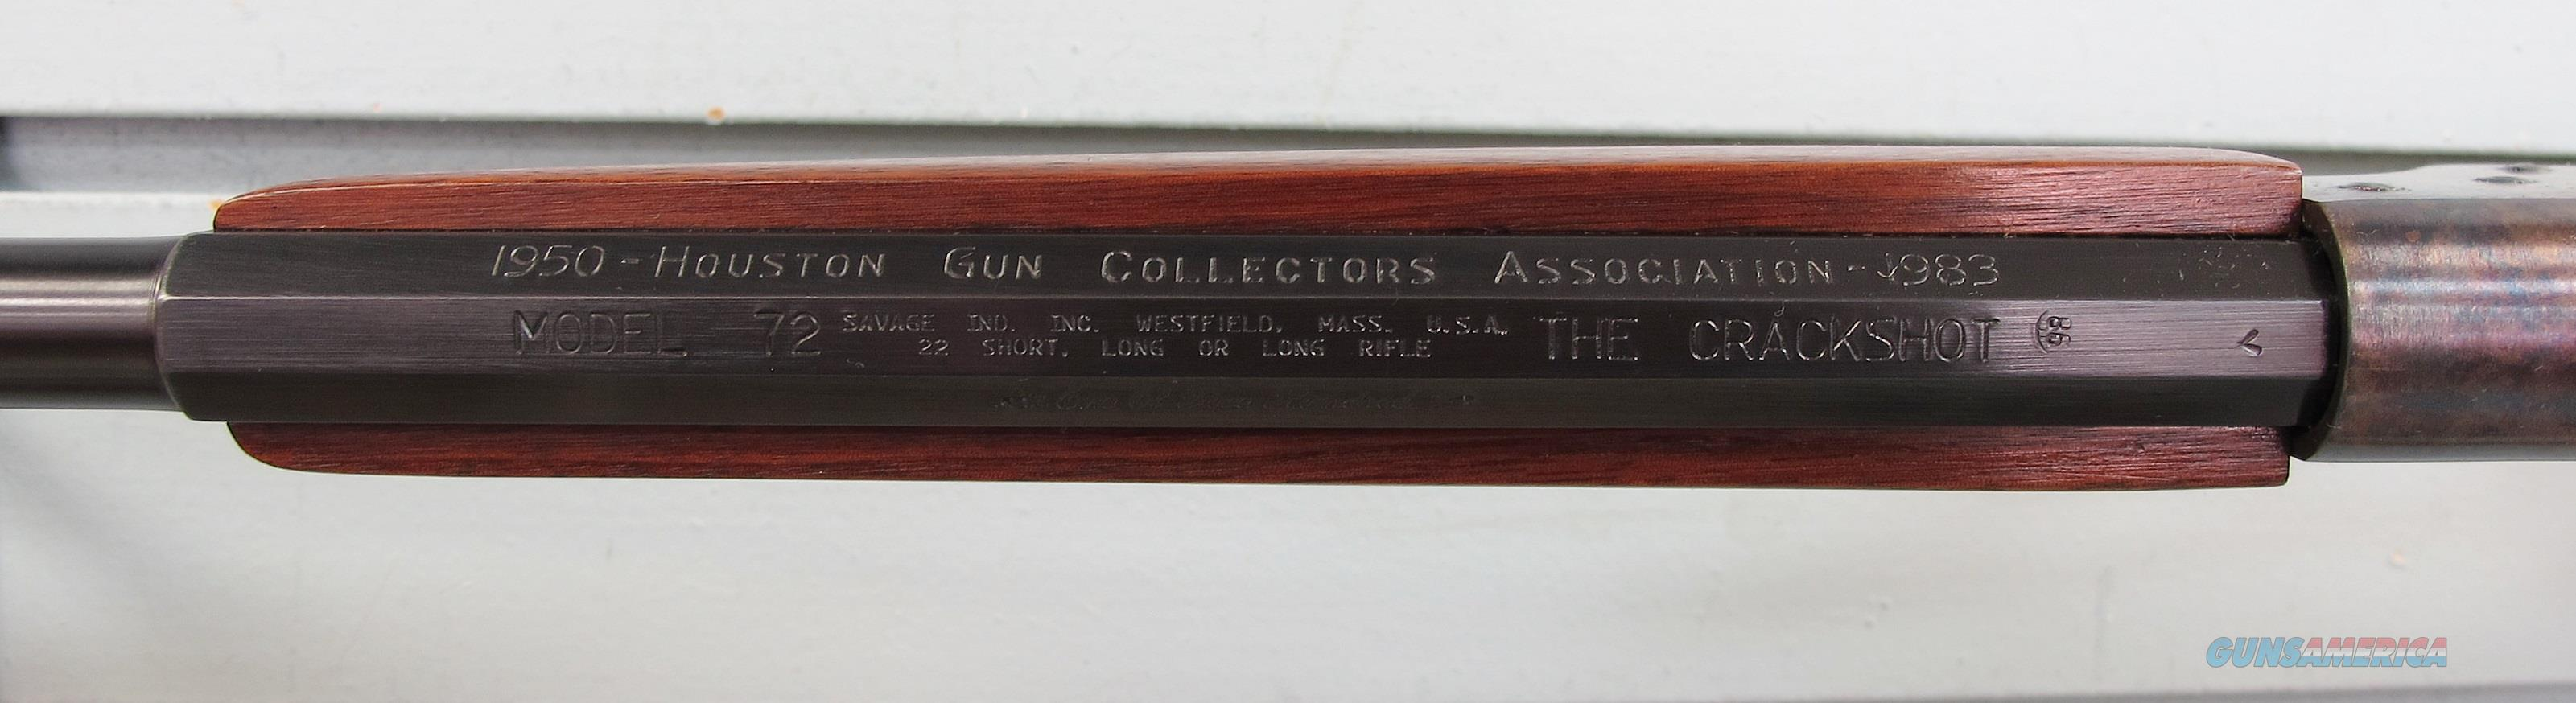 Savage Model 72 Crackshot .22LR - 1 of 500   Guns > Rifles > Savage Rifles > Rimfire